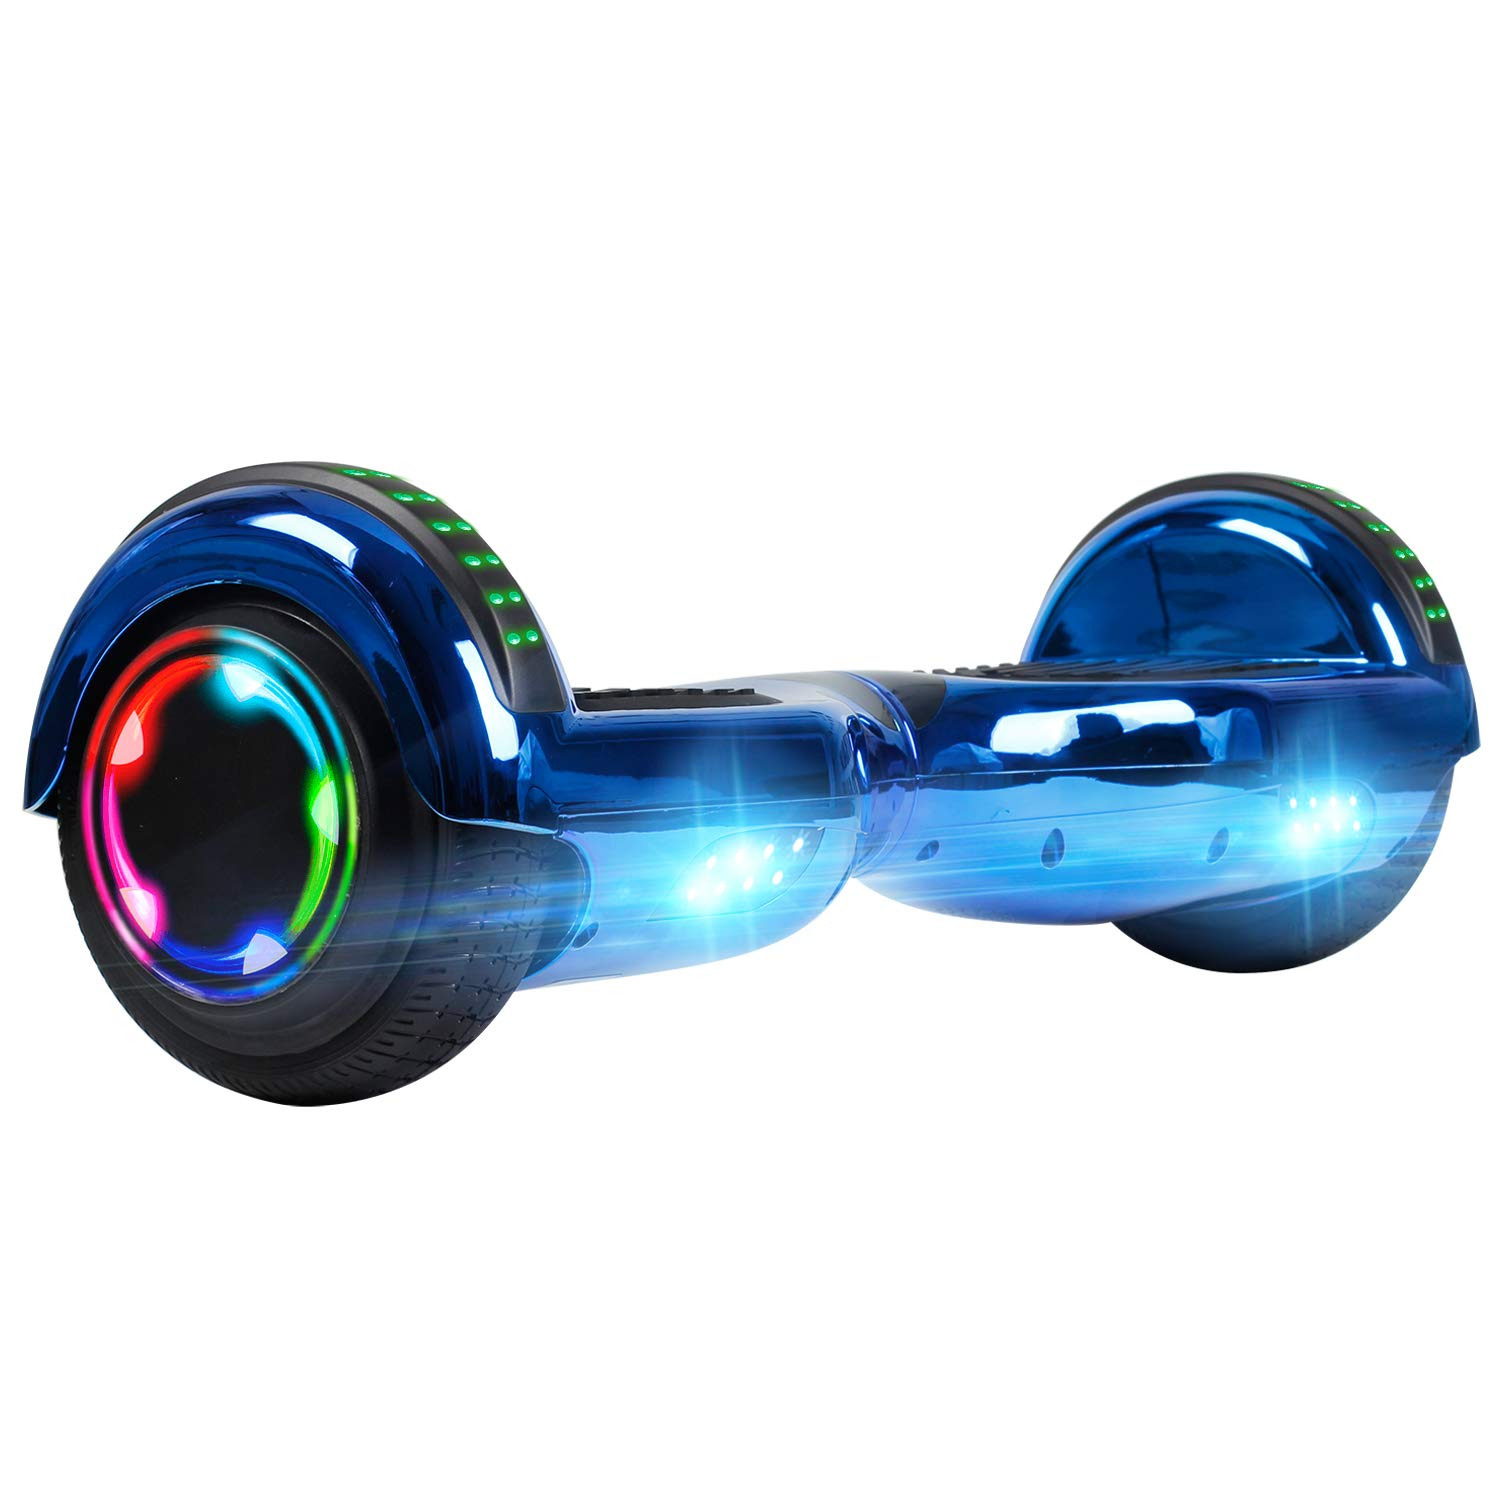 UNI-SUN Chrome Hoverboard for Kids, 6.5 Two Wheel Electric Scooter, Self Balancing Hoverboard with Bluetooth and LED Lights for Adults, UL 2272 Certified Hover Board